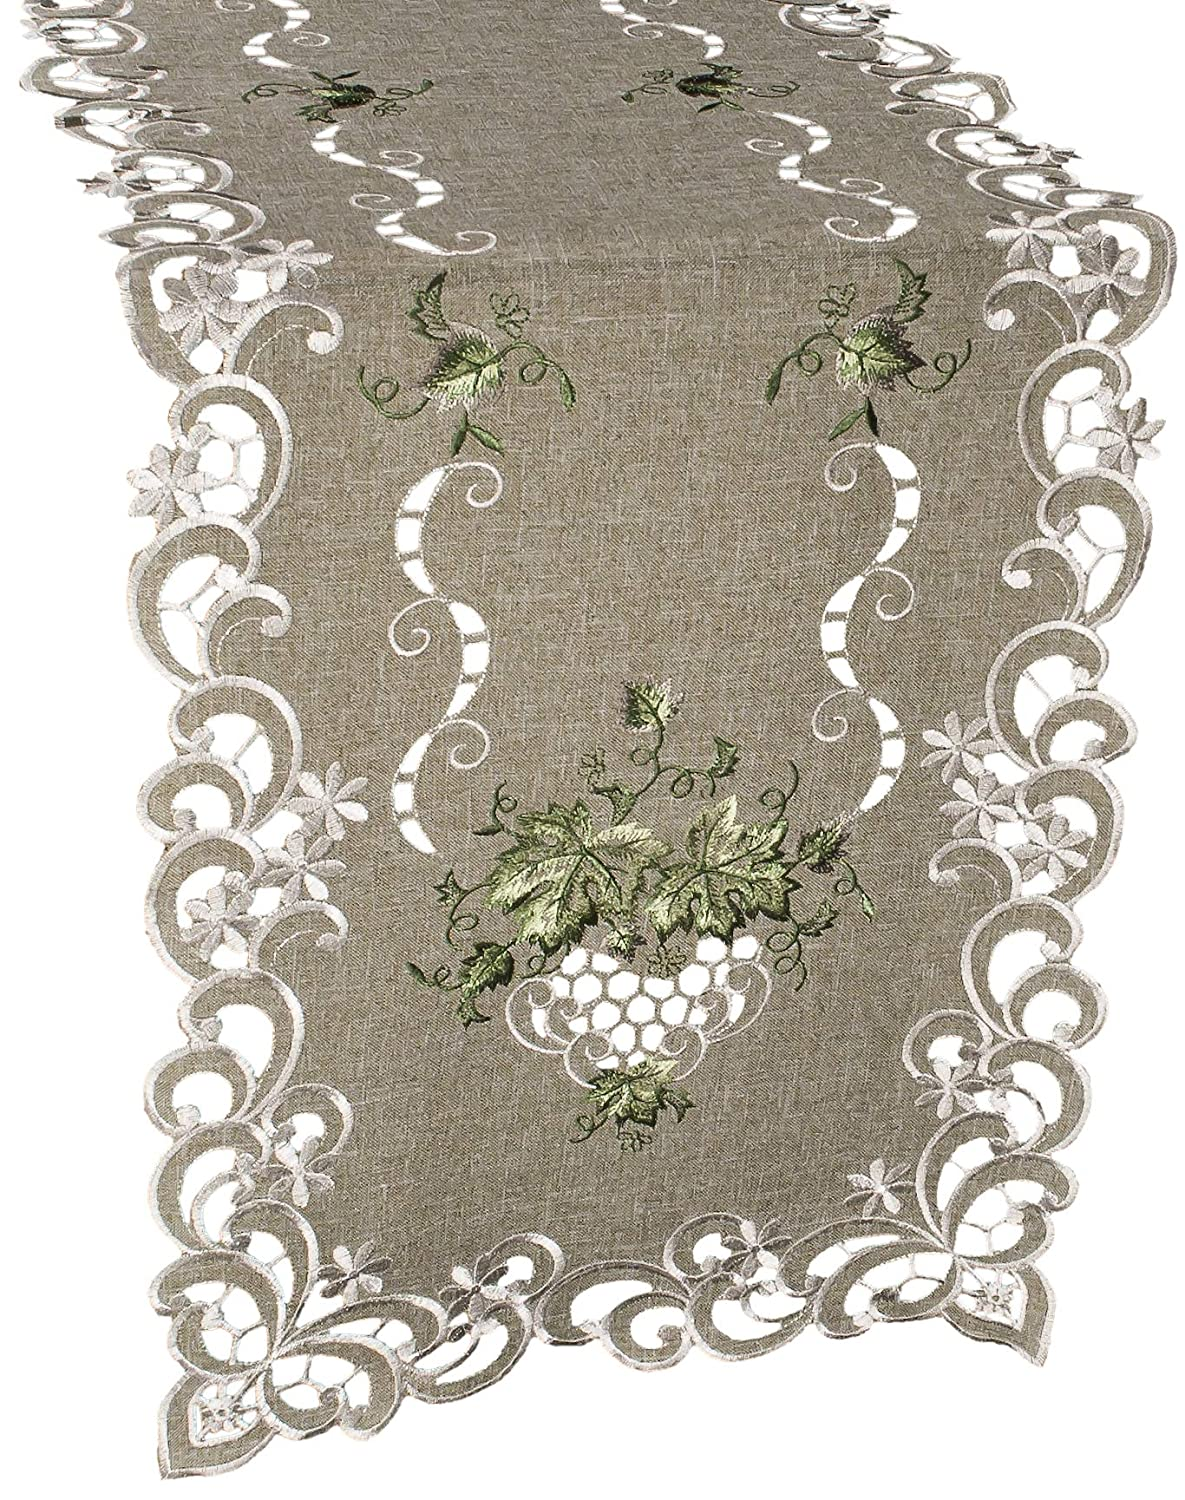 Embroidered Green Leaf on Antique Green Fabric Table Runner Dresser Scarf Coffee Table Doily 41cm x 110cm   B079TH7K23